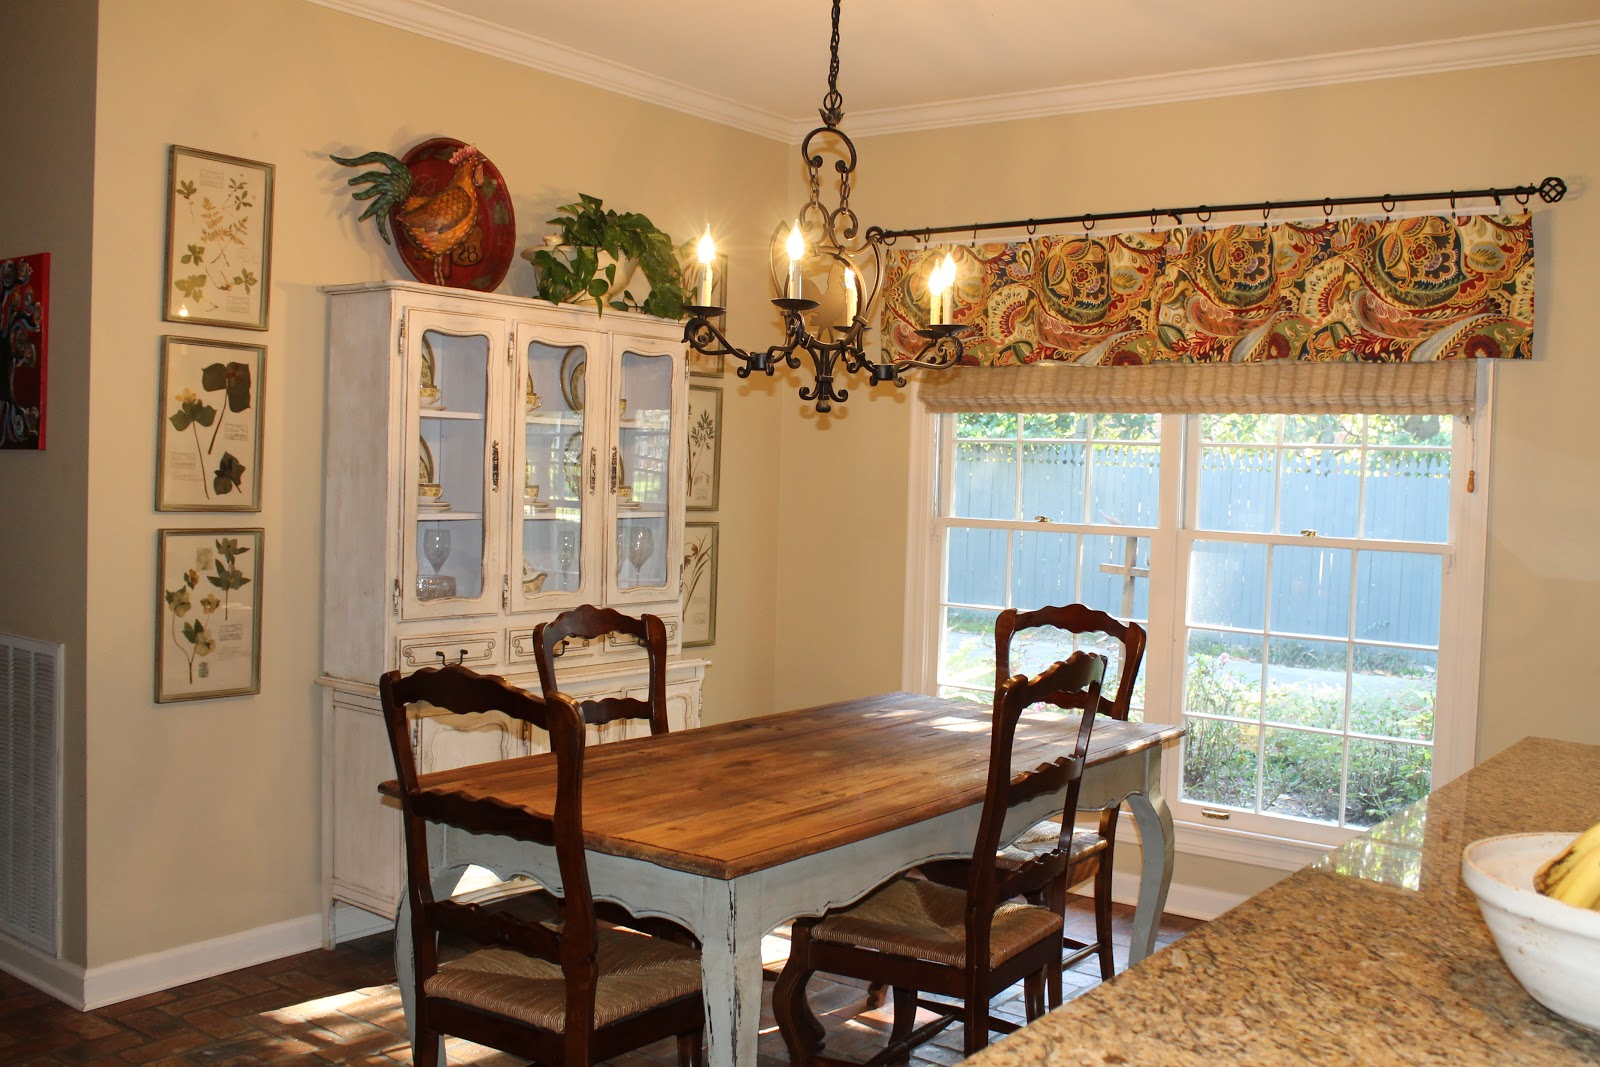 Valance Curtains For Kitchen Extractor Fan Seamingly Smitten How To Sew A Mini